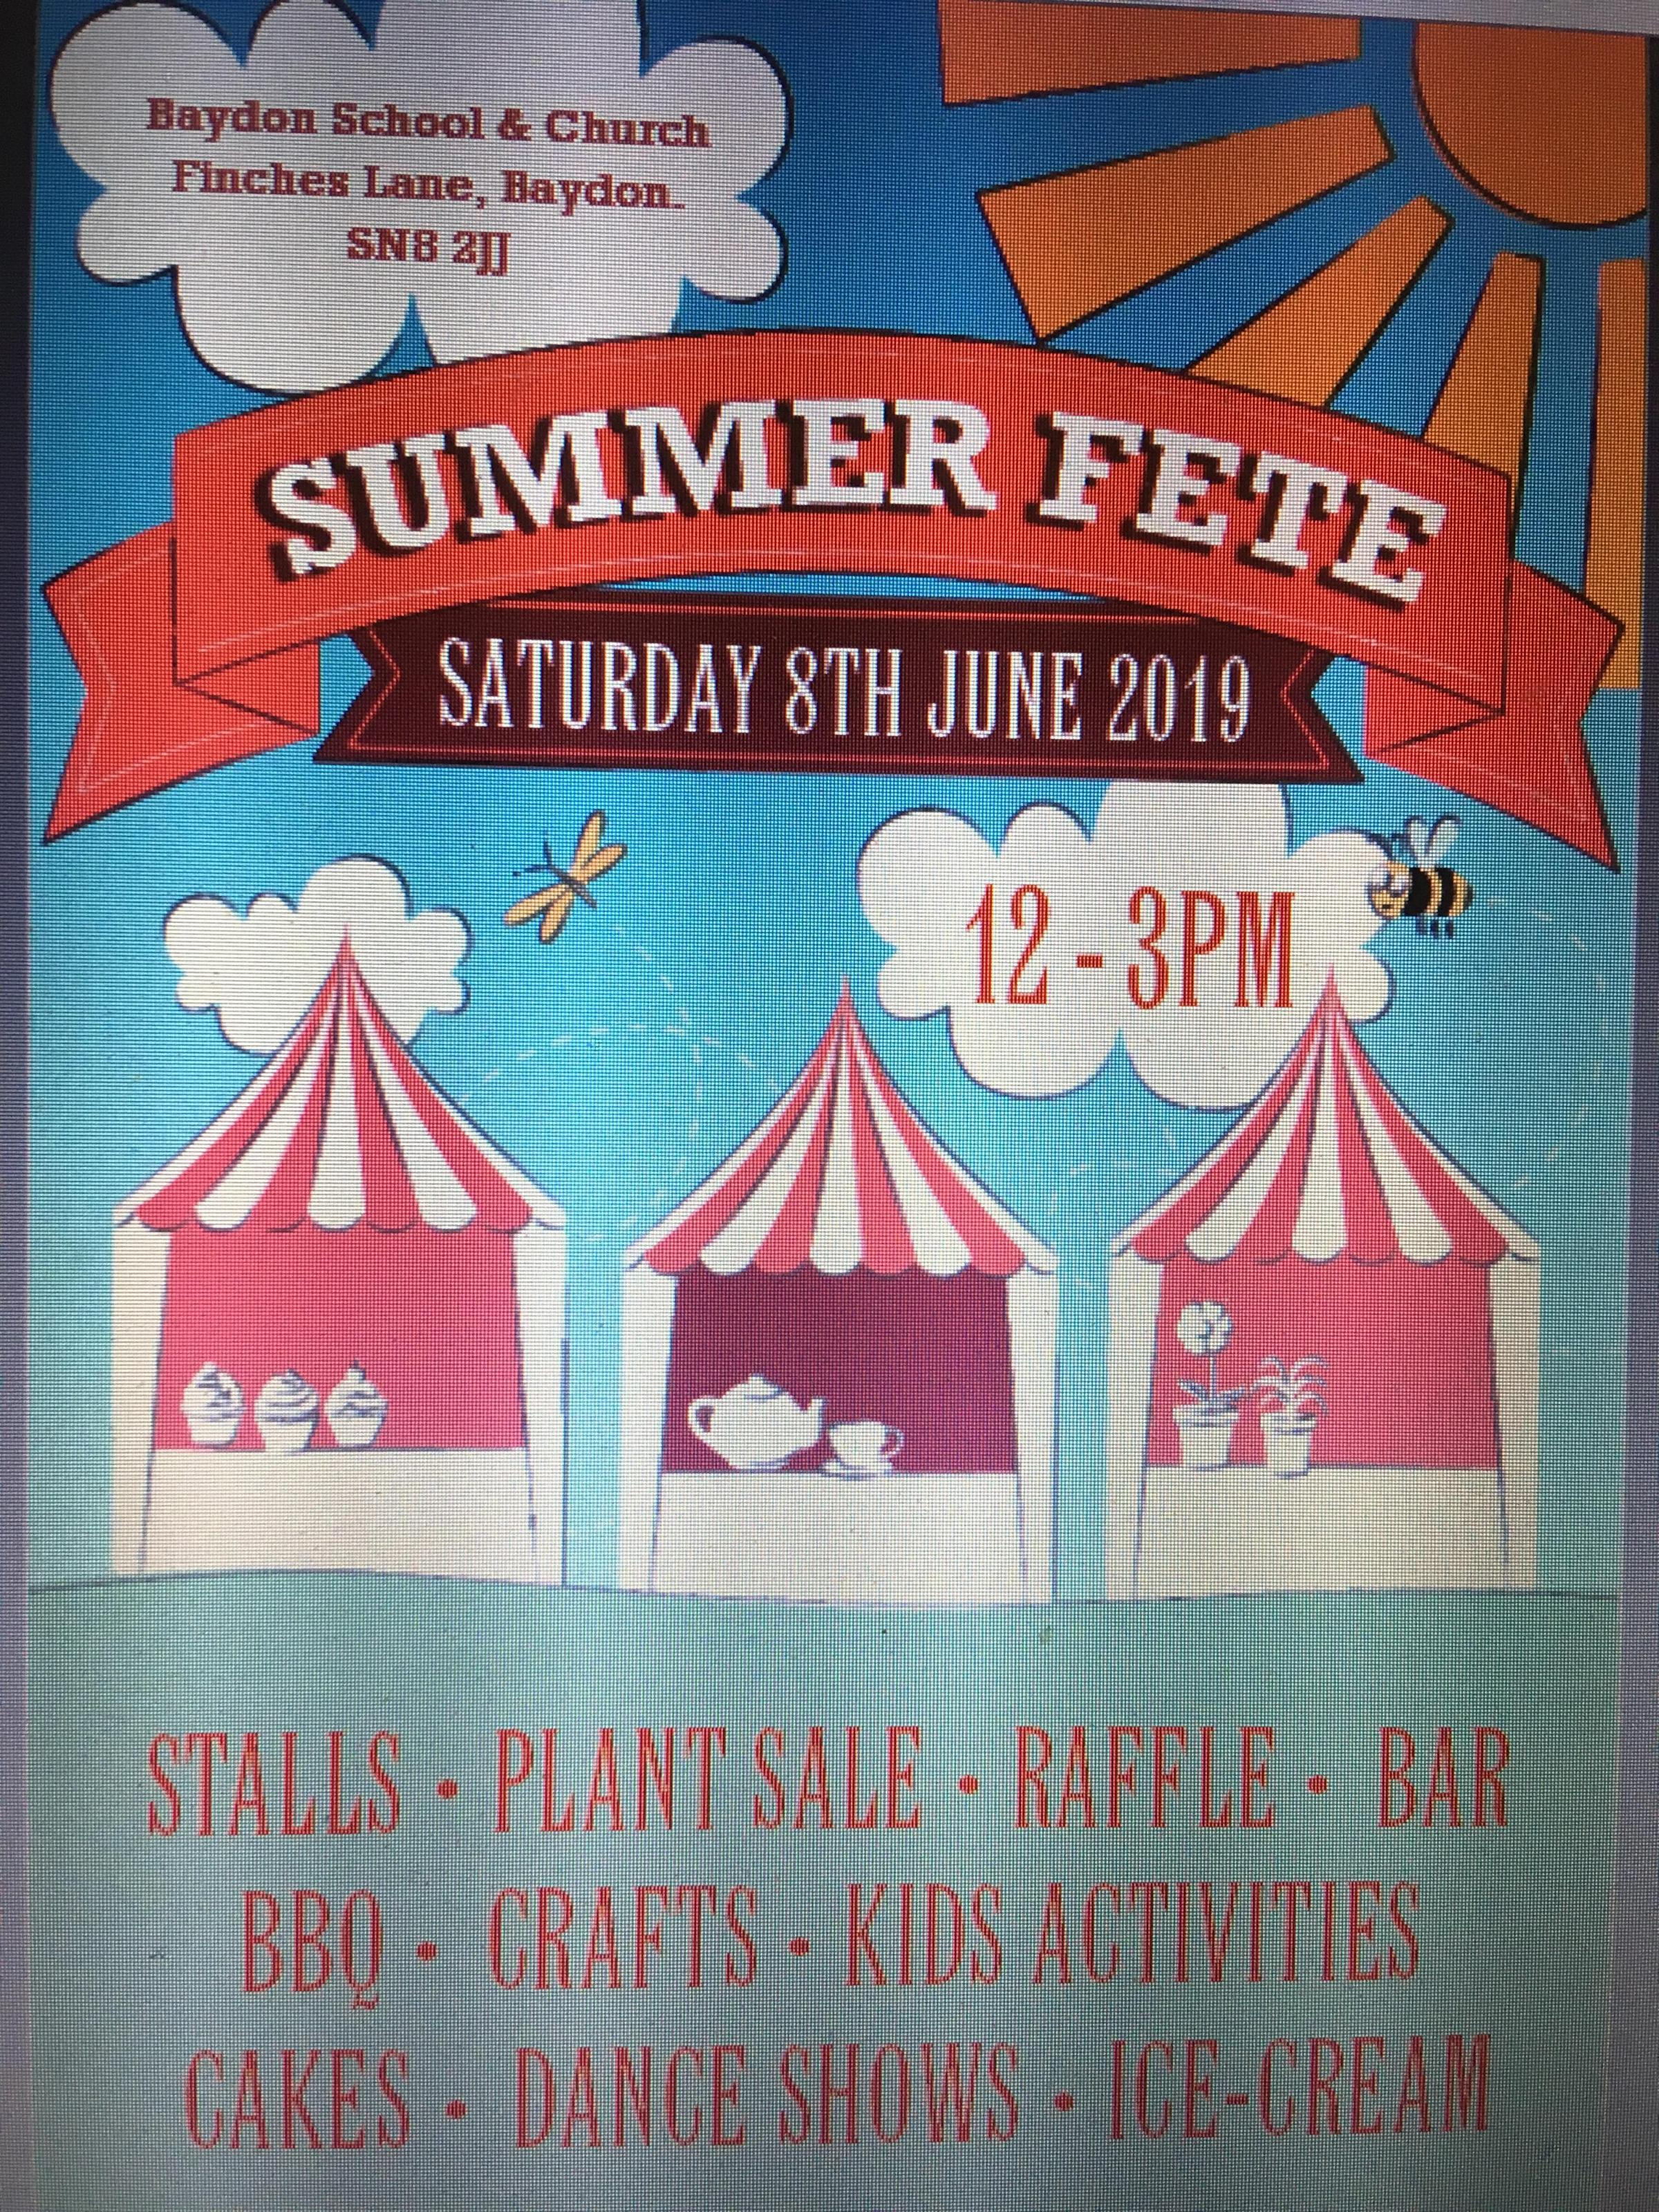 Baydon School & Church Summer Fete